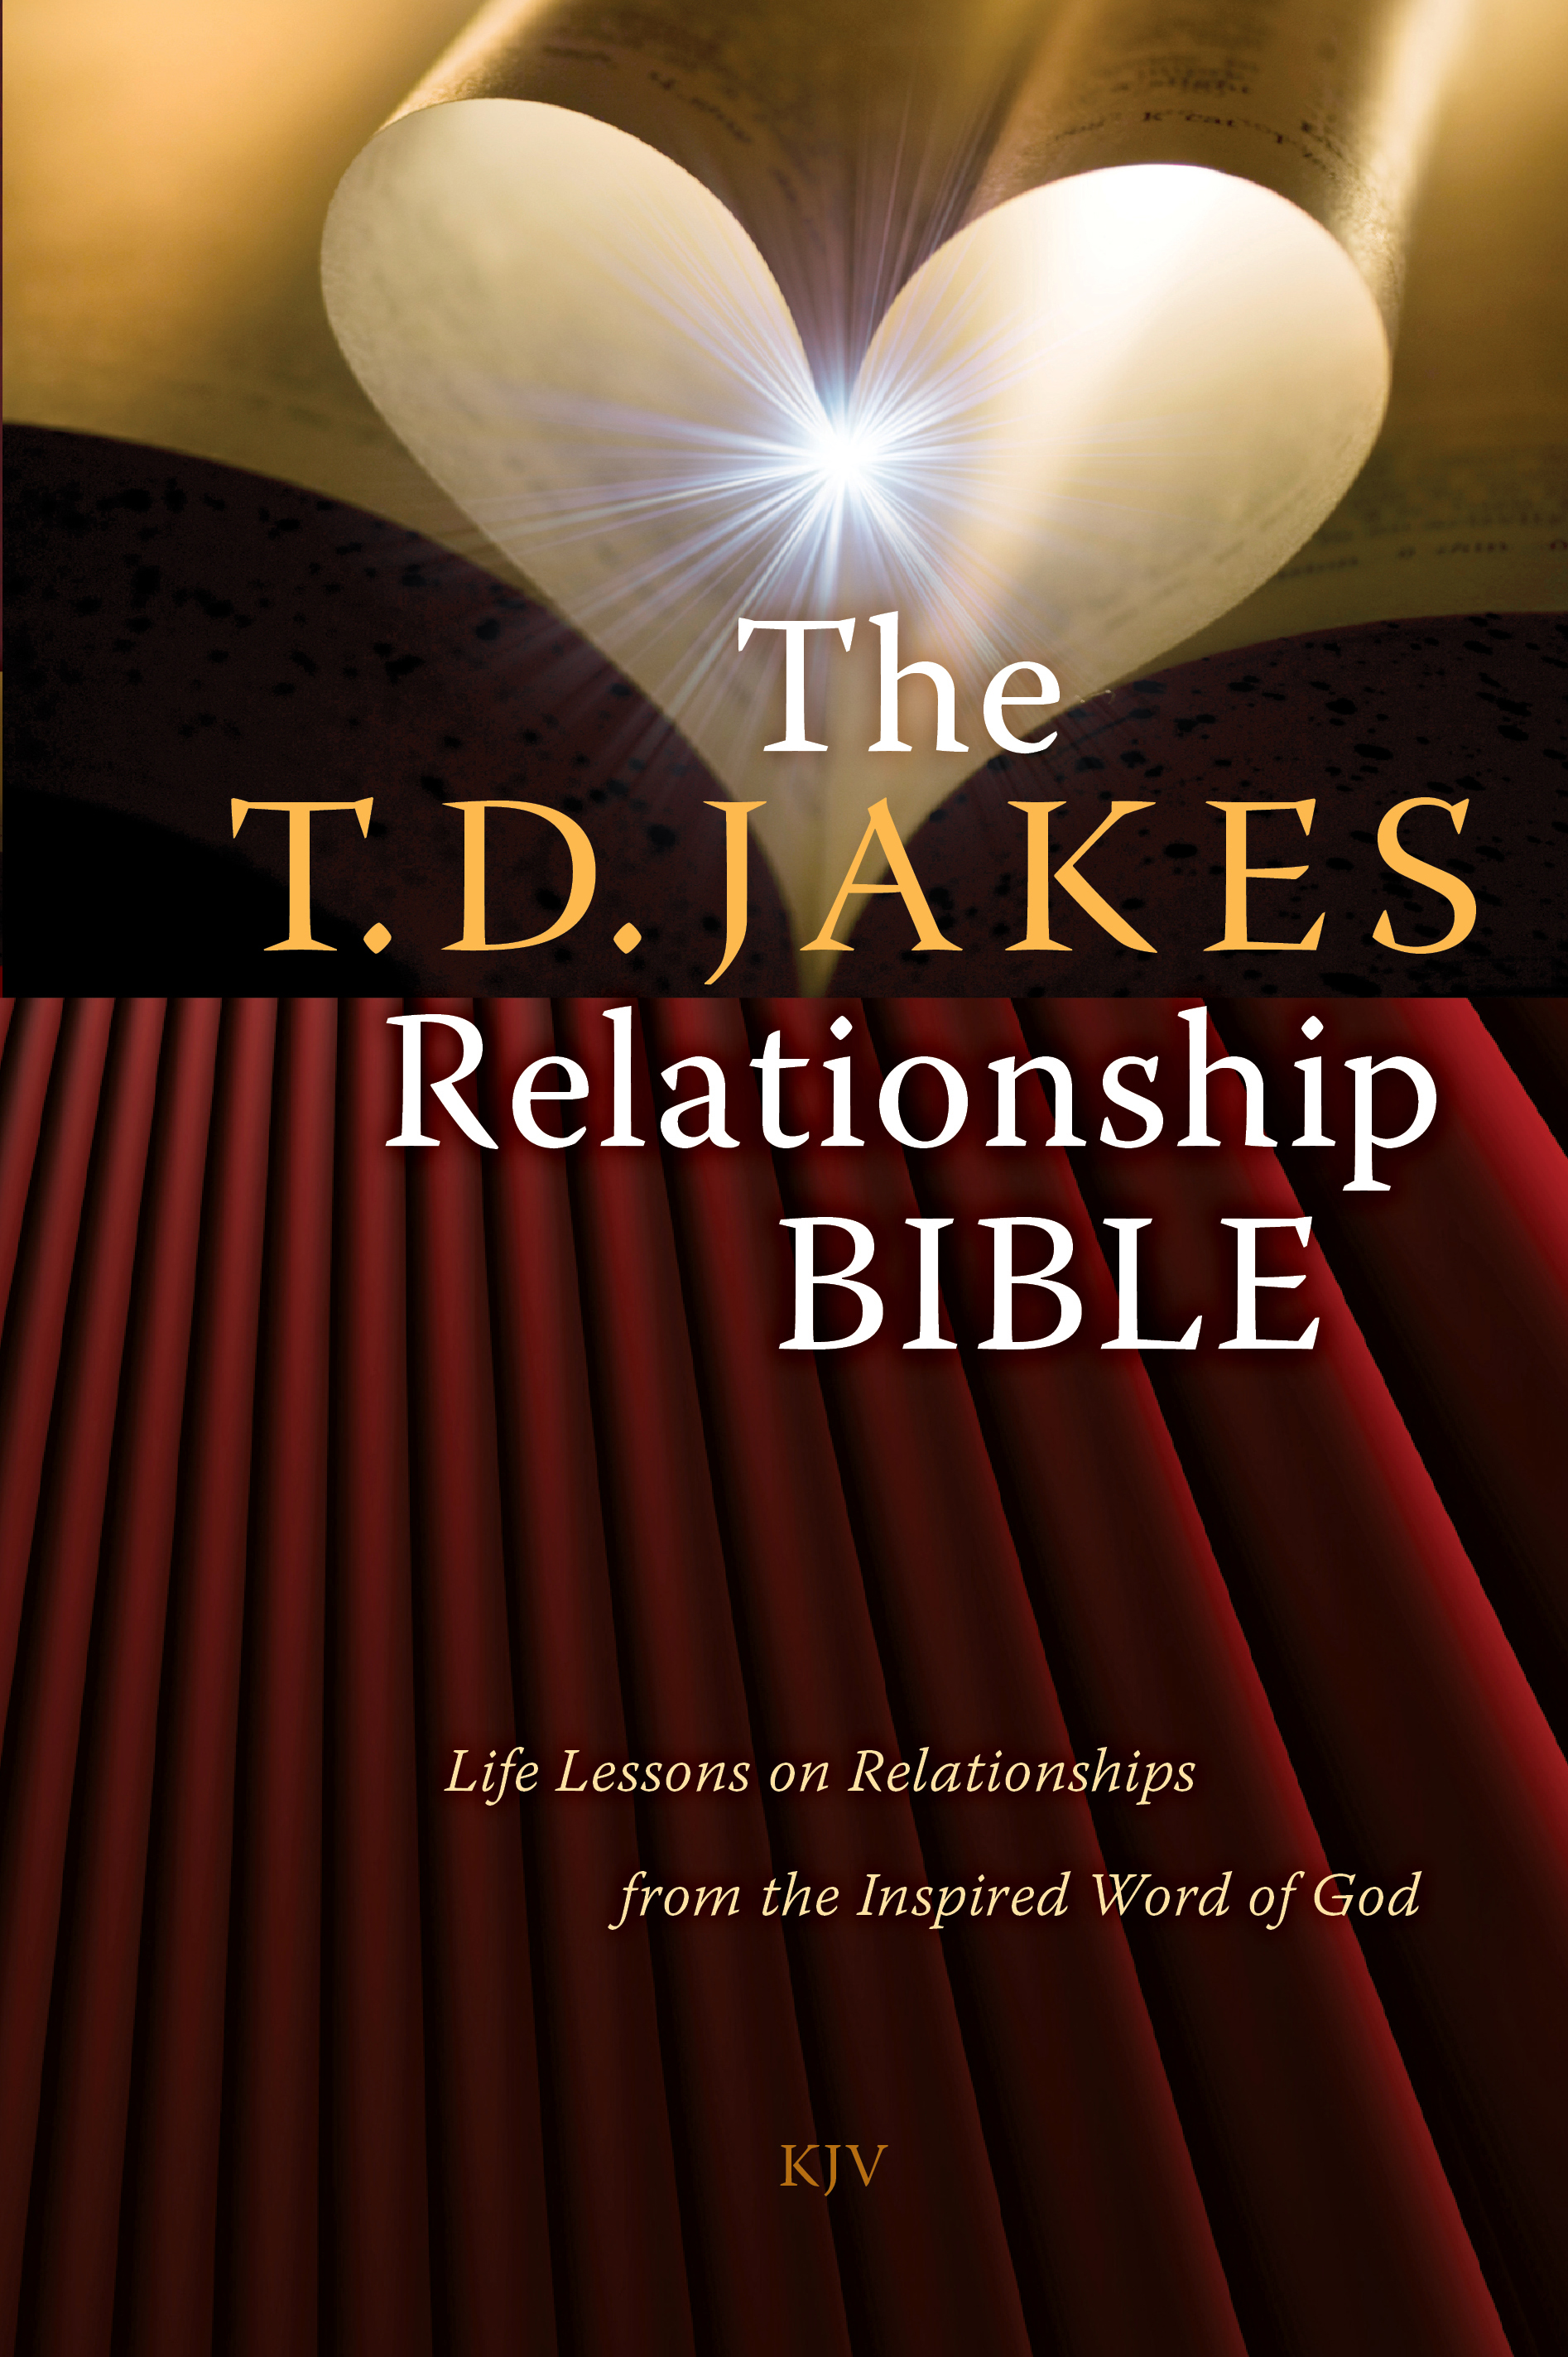 Td Jakes Quotes On Life T.djakes  Official Publisher Page  Simon & Schuster Uk